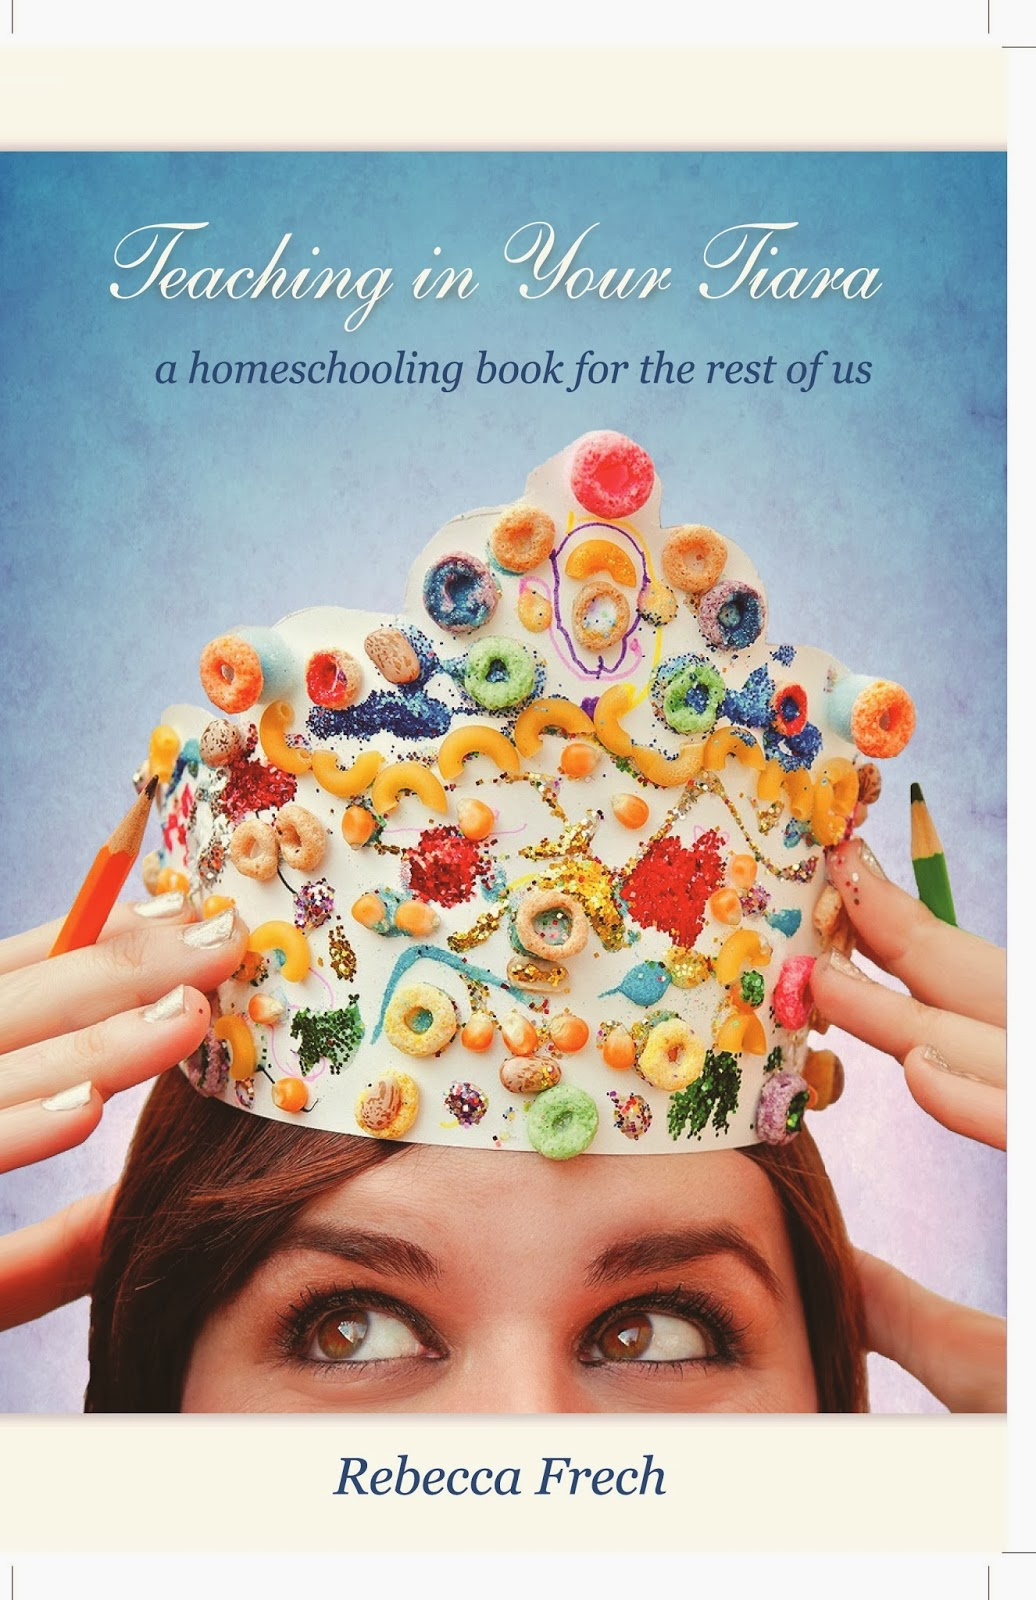 http://www.amazon.com/Teaching-Your-Tiara-Rebecca-Frech-ebook/dp/B00D19Z5SO/ref=zg_bs_69844_10